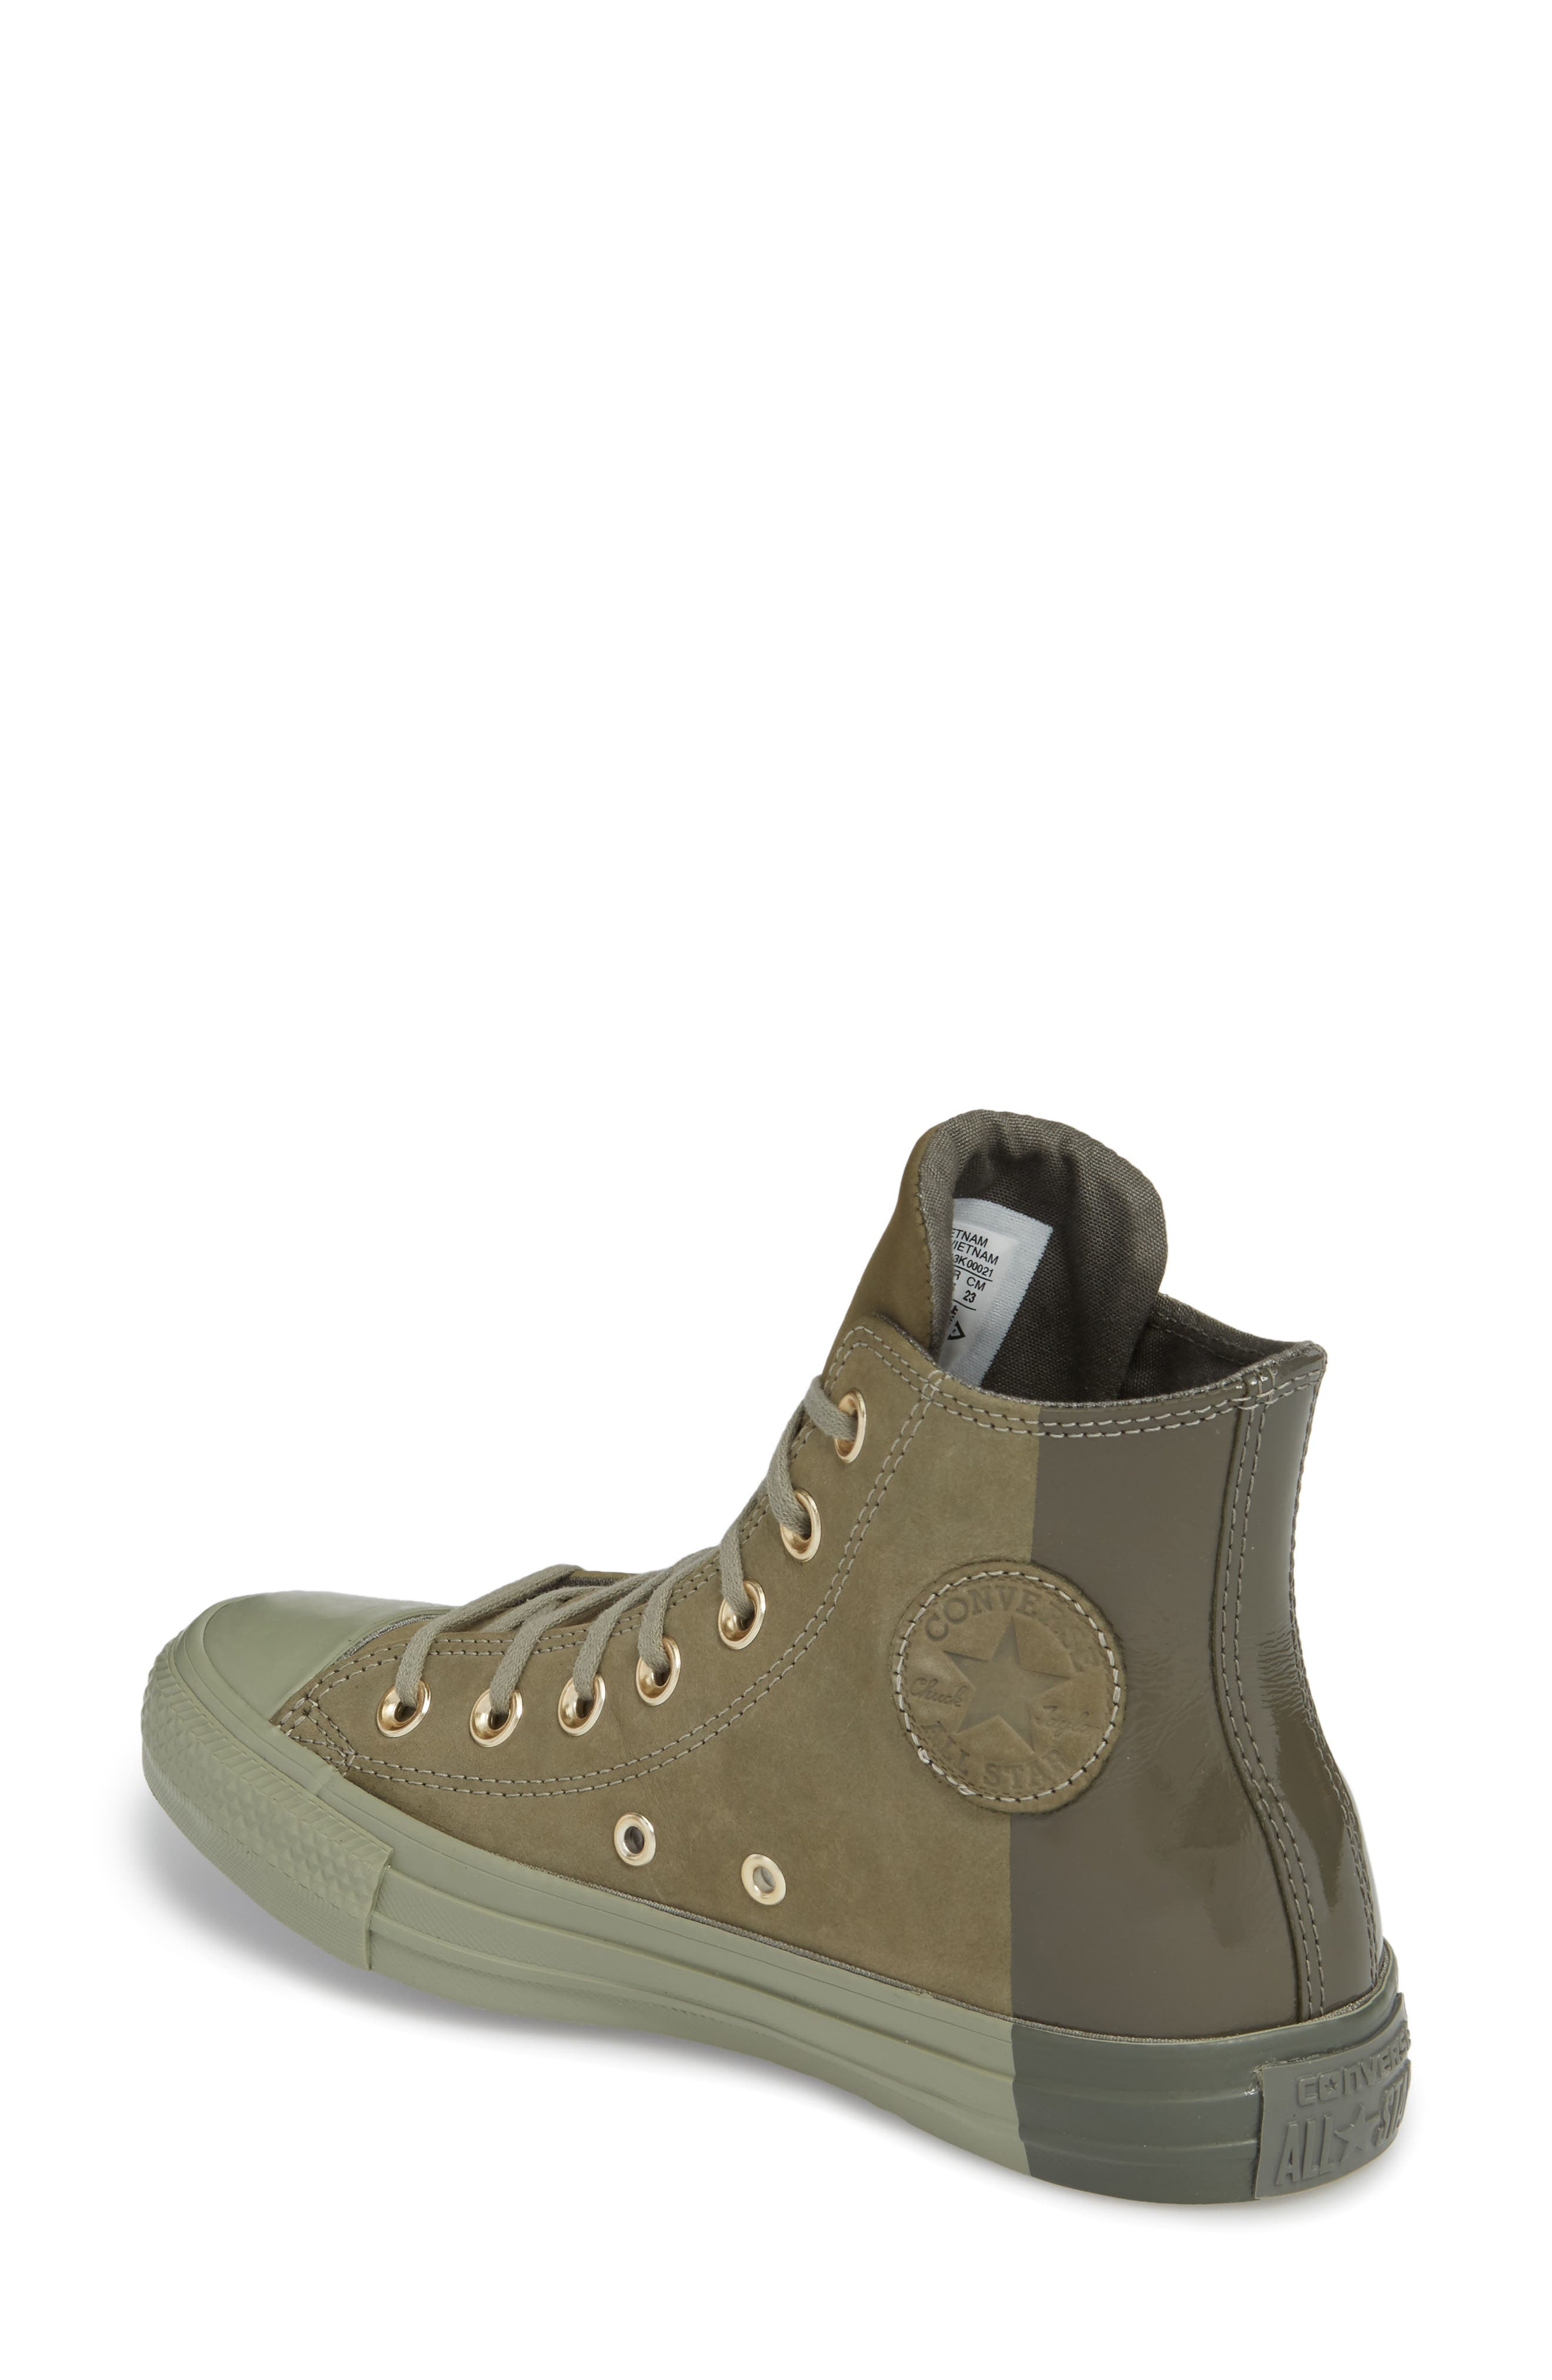 Chuck Taylor<sup>®</sup> All Star<sup>®</sup> High Top Sneaker,                             Alternate thumbnail 2, color,                             Dark Stucco